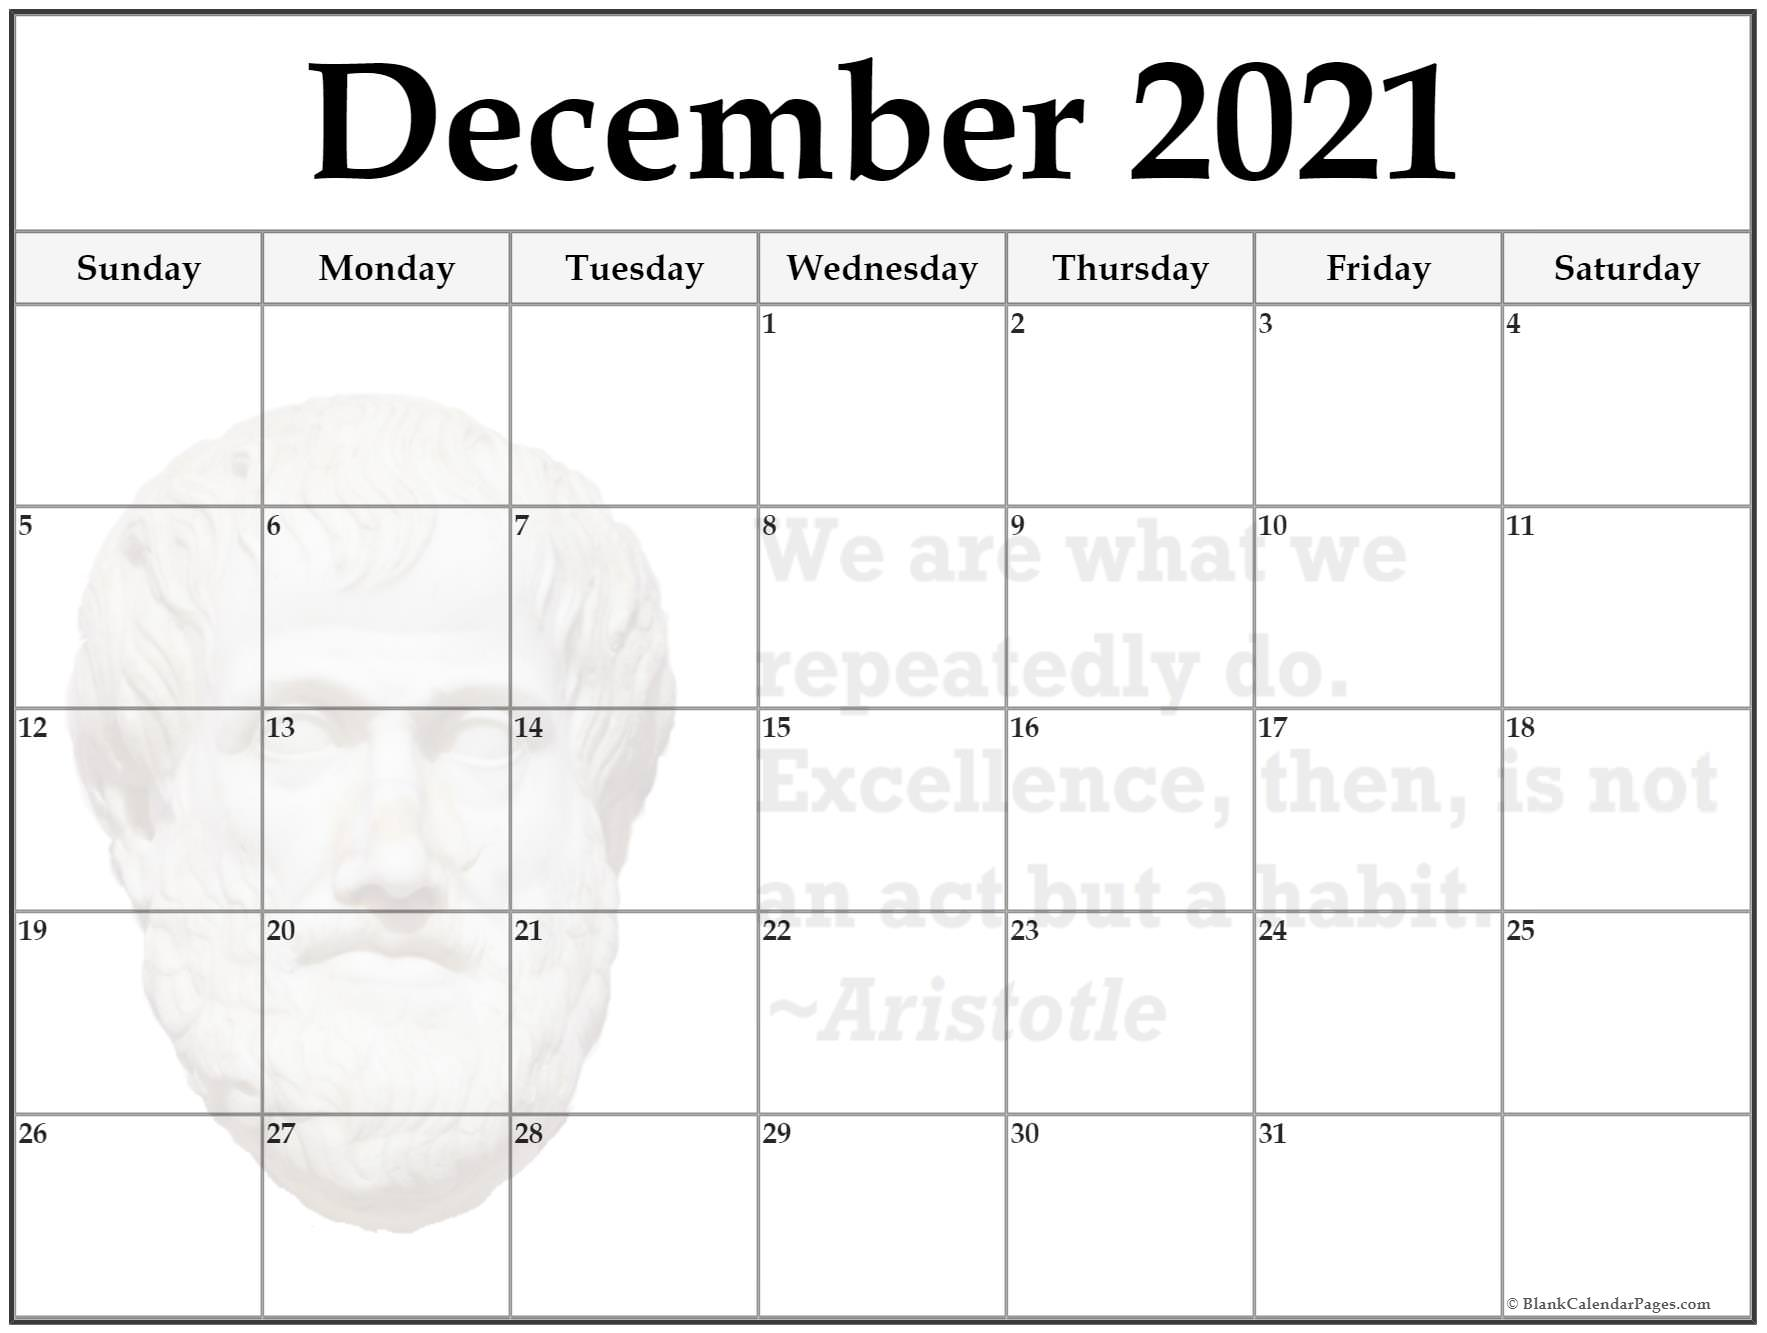 December 2020 Aristotle quote calendar